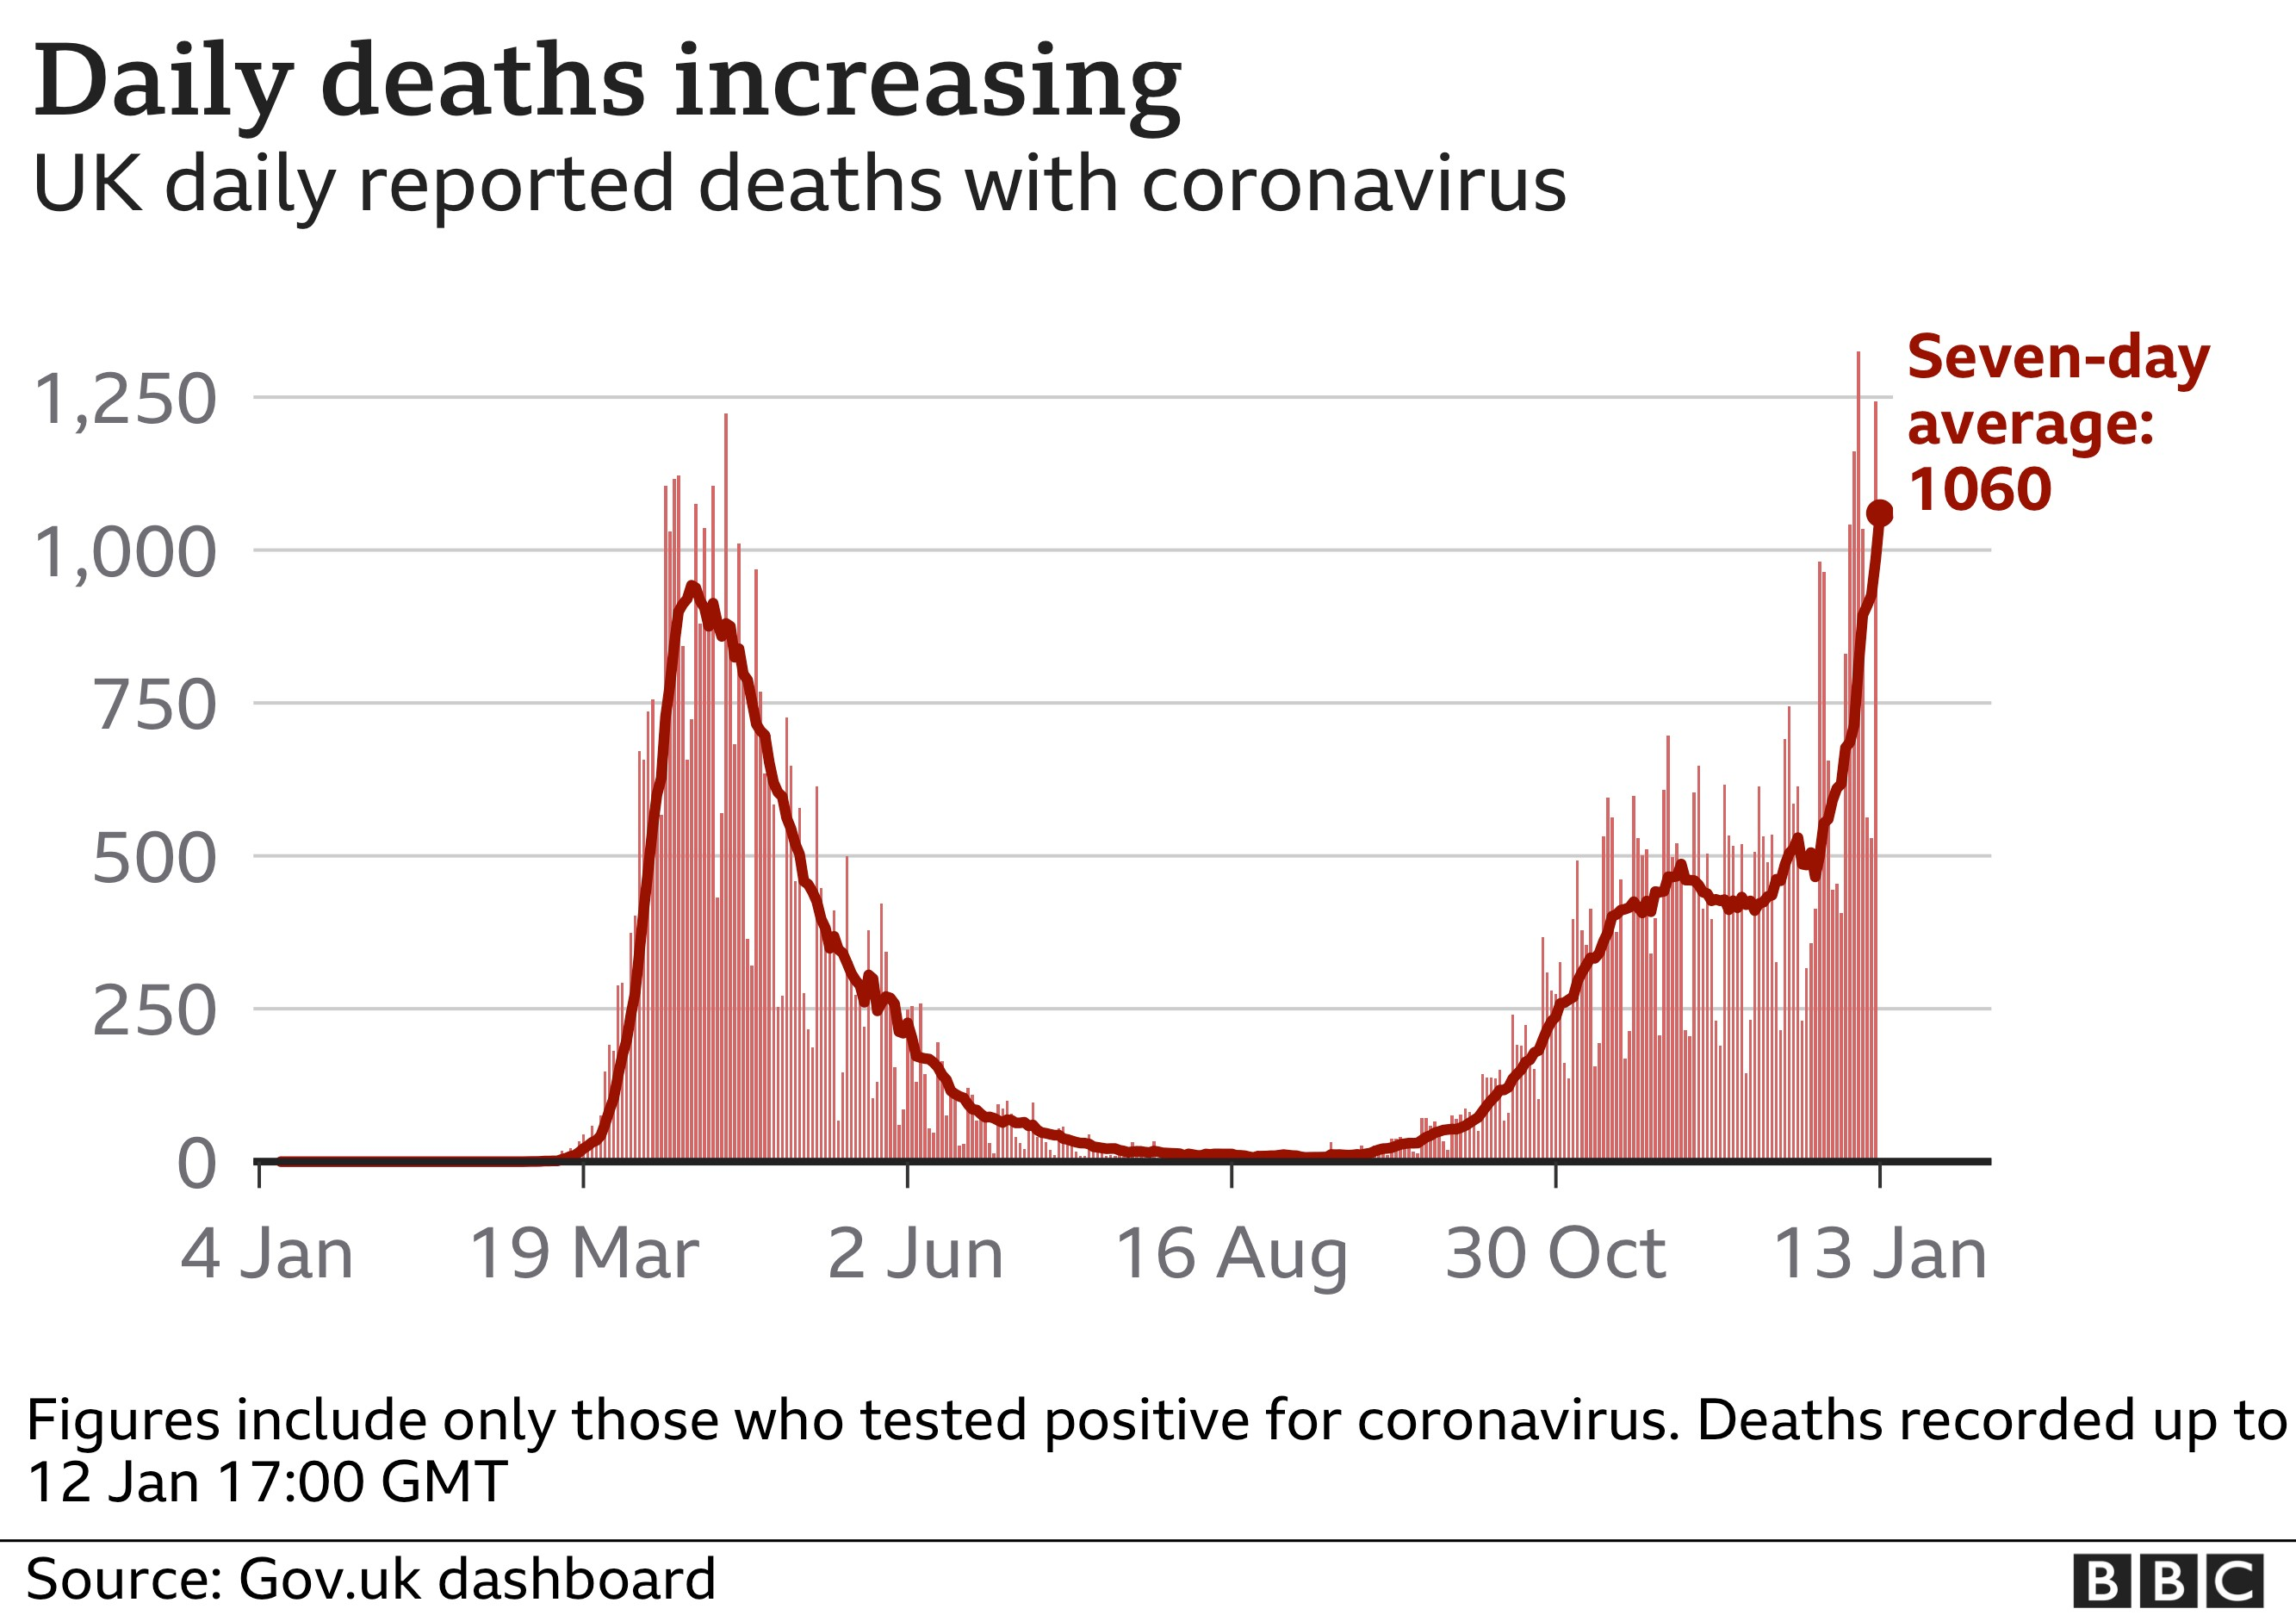 Graphic showing daily death figures